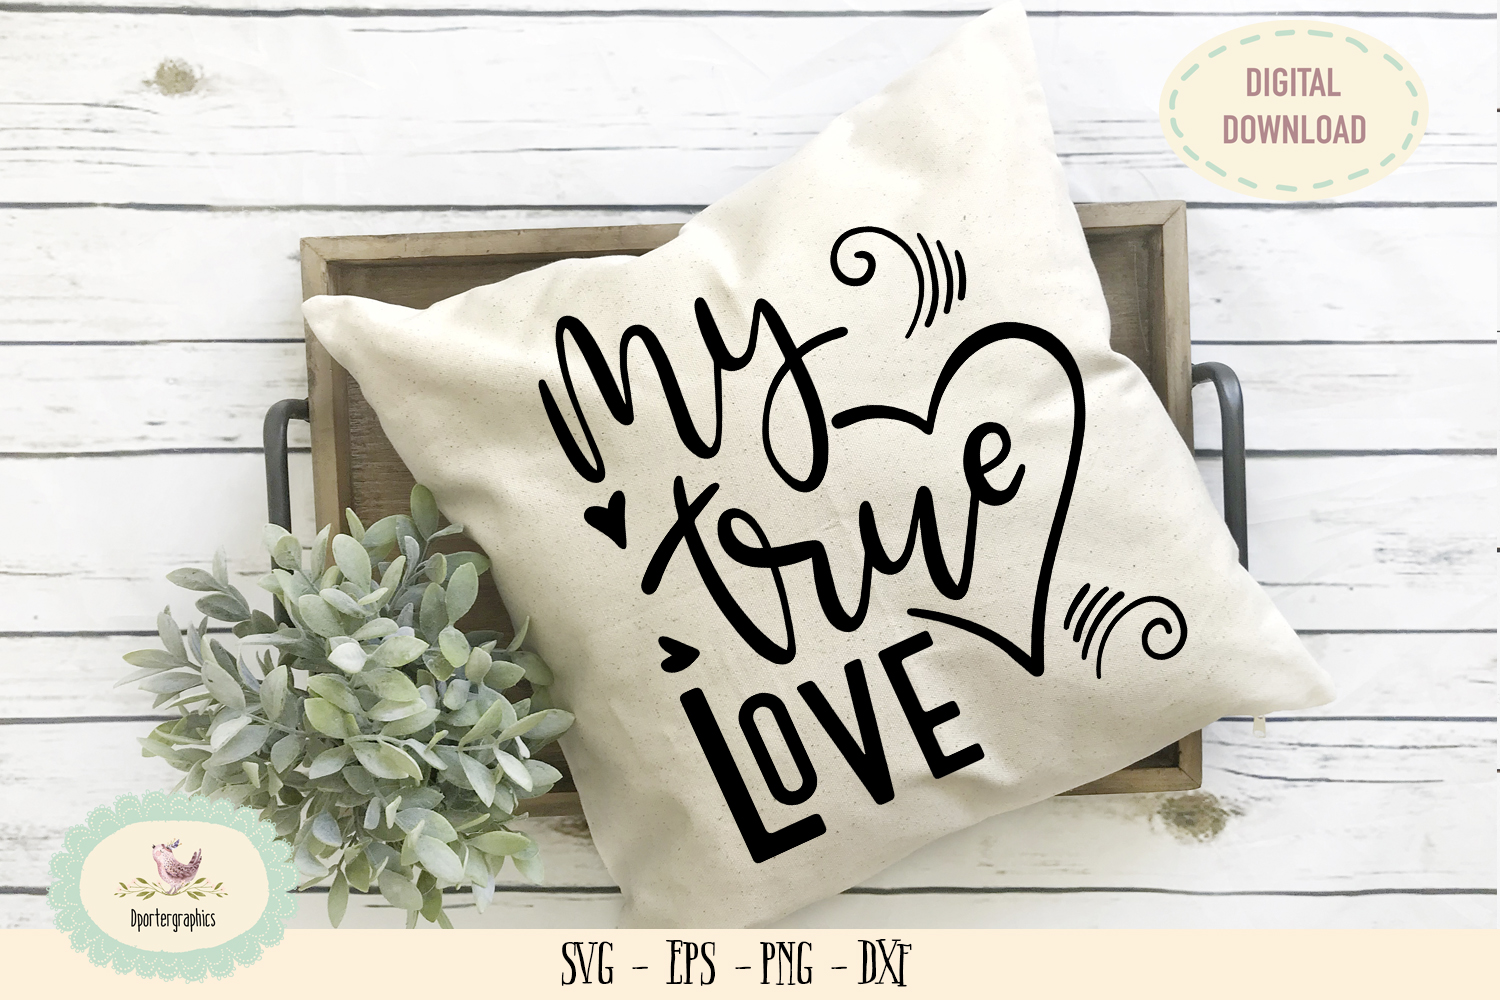 My true love wedding anniversary valentine SVG PNG example image 1